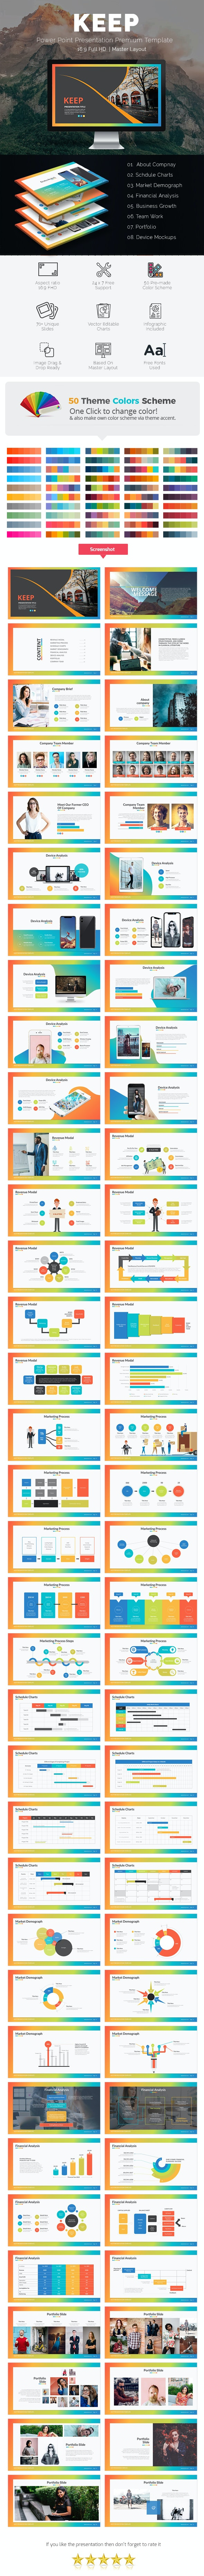 Keep Power Point Presentation Template - Business PowerPoint Templates